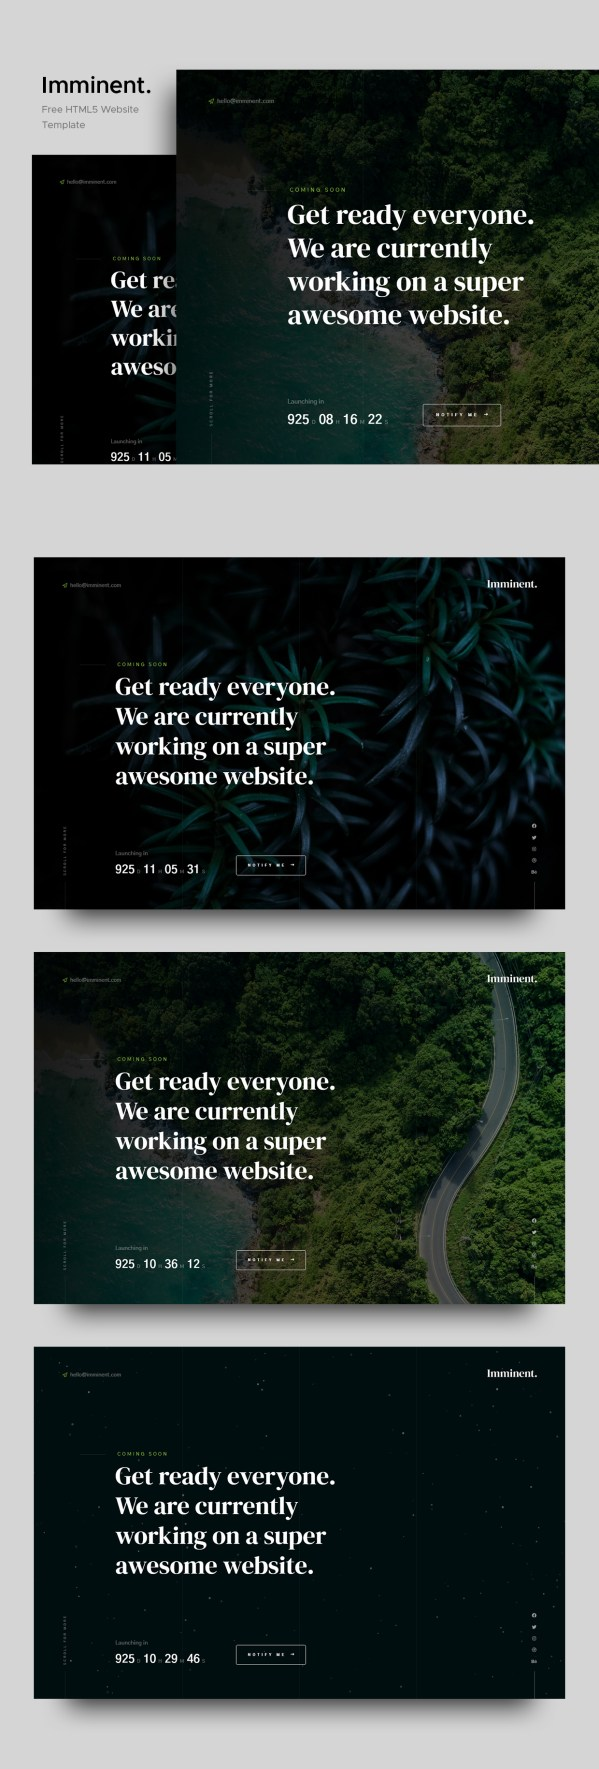 Imminent — Stylish Free Coming Soon Website Template